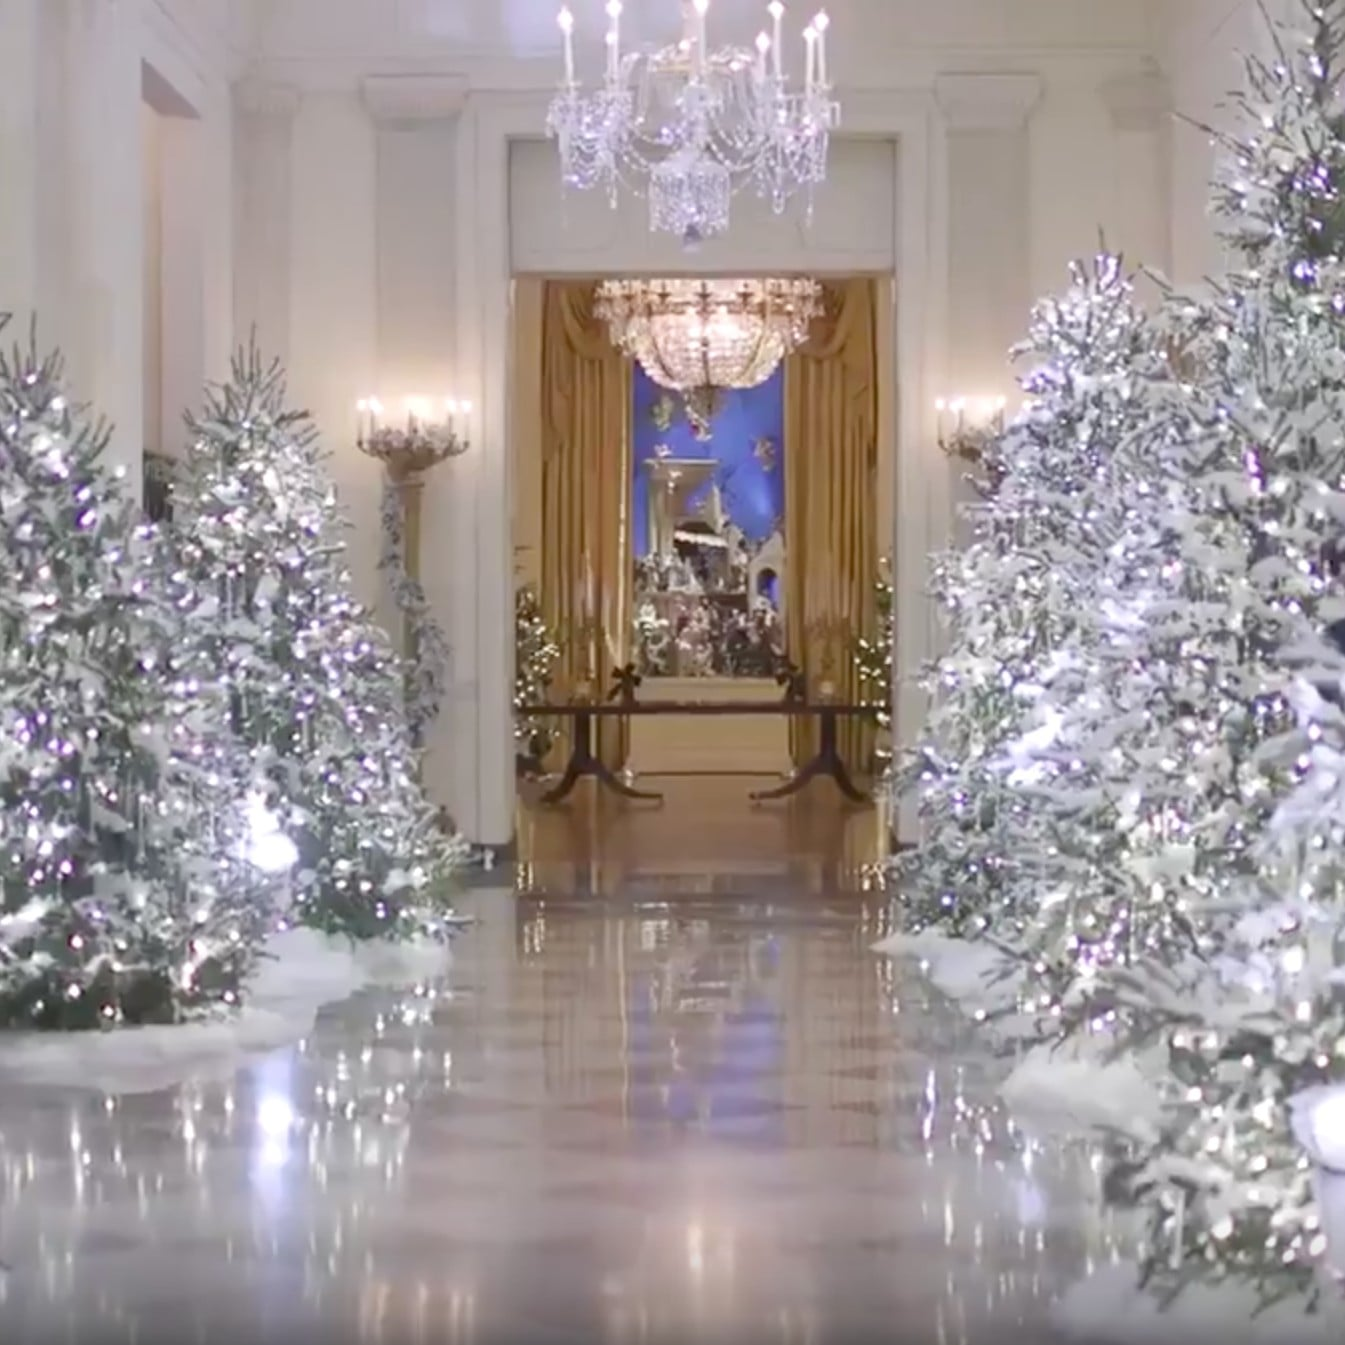 white house holiday decorations 2017 popsugar family - Christmas Decorations 2017